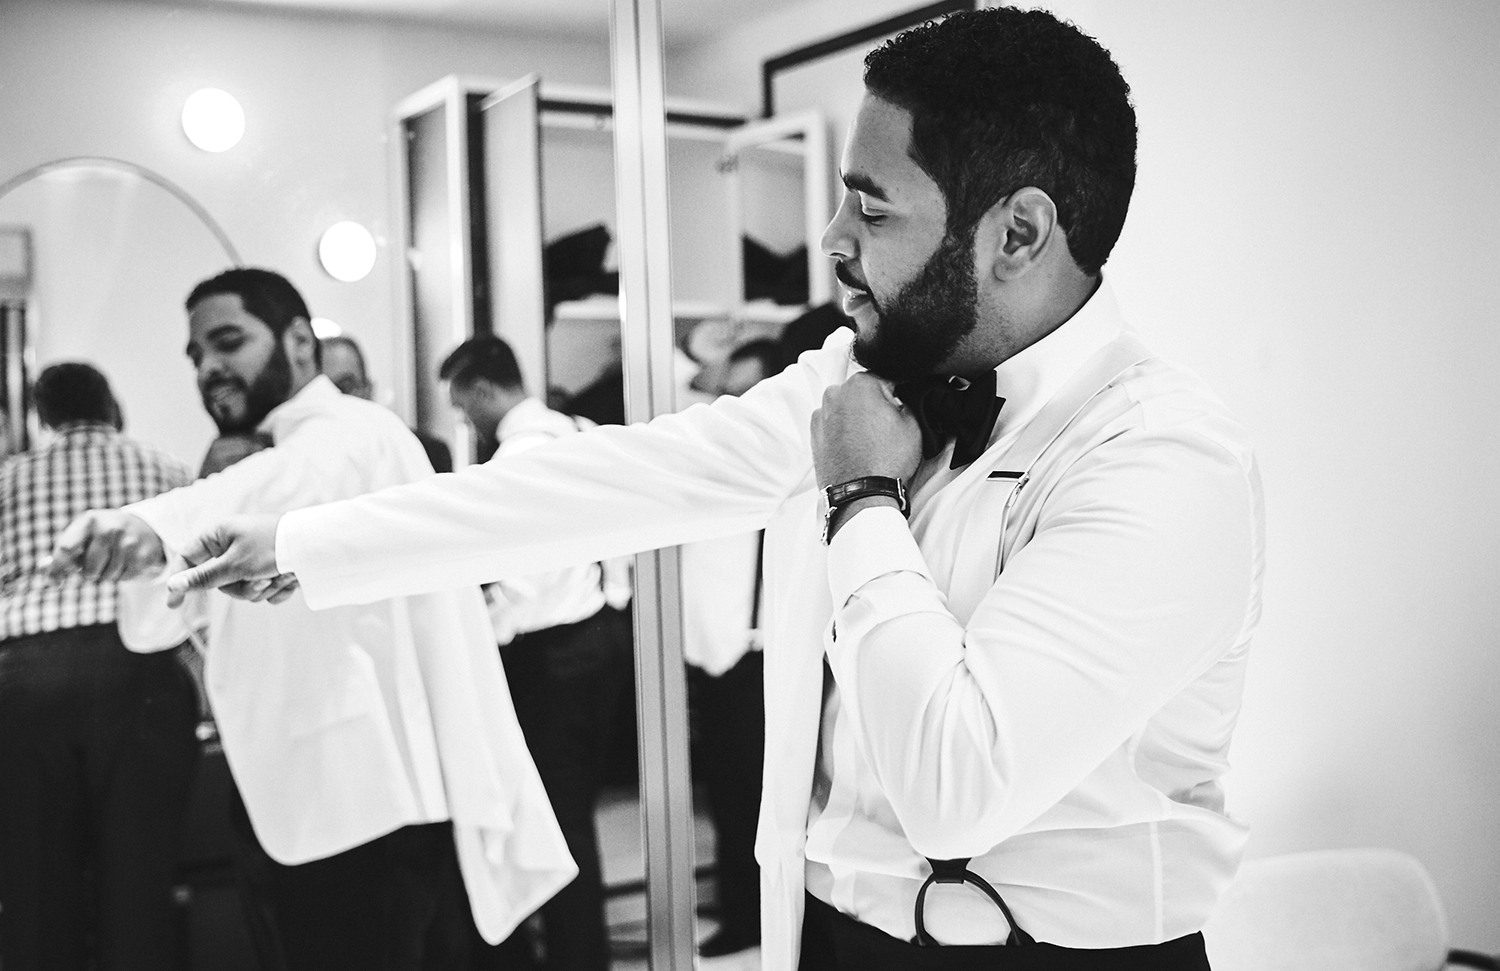 170930_WilliamValeWeddingPhotography_BrooklynWeddingPhotographer_By_BriJohnsonWeddings_0009.jpg